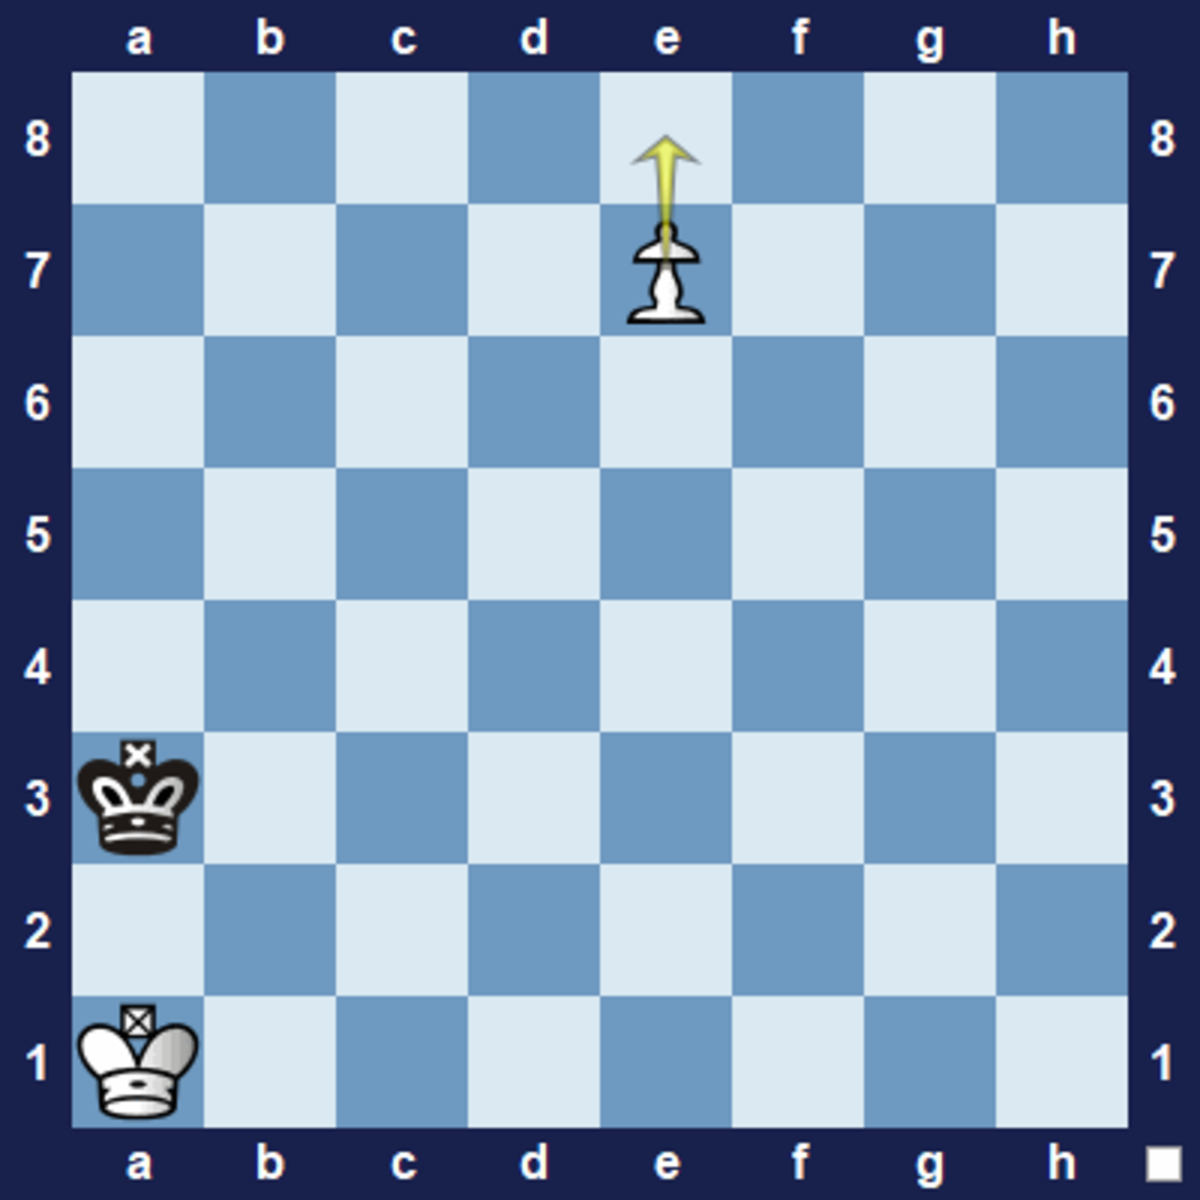 Promotion of the Pawn